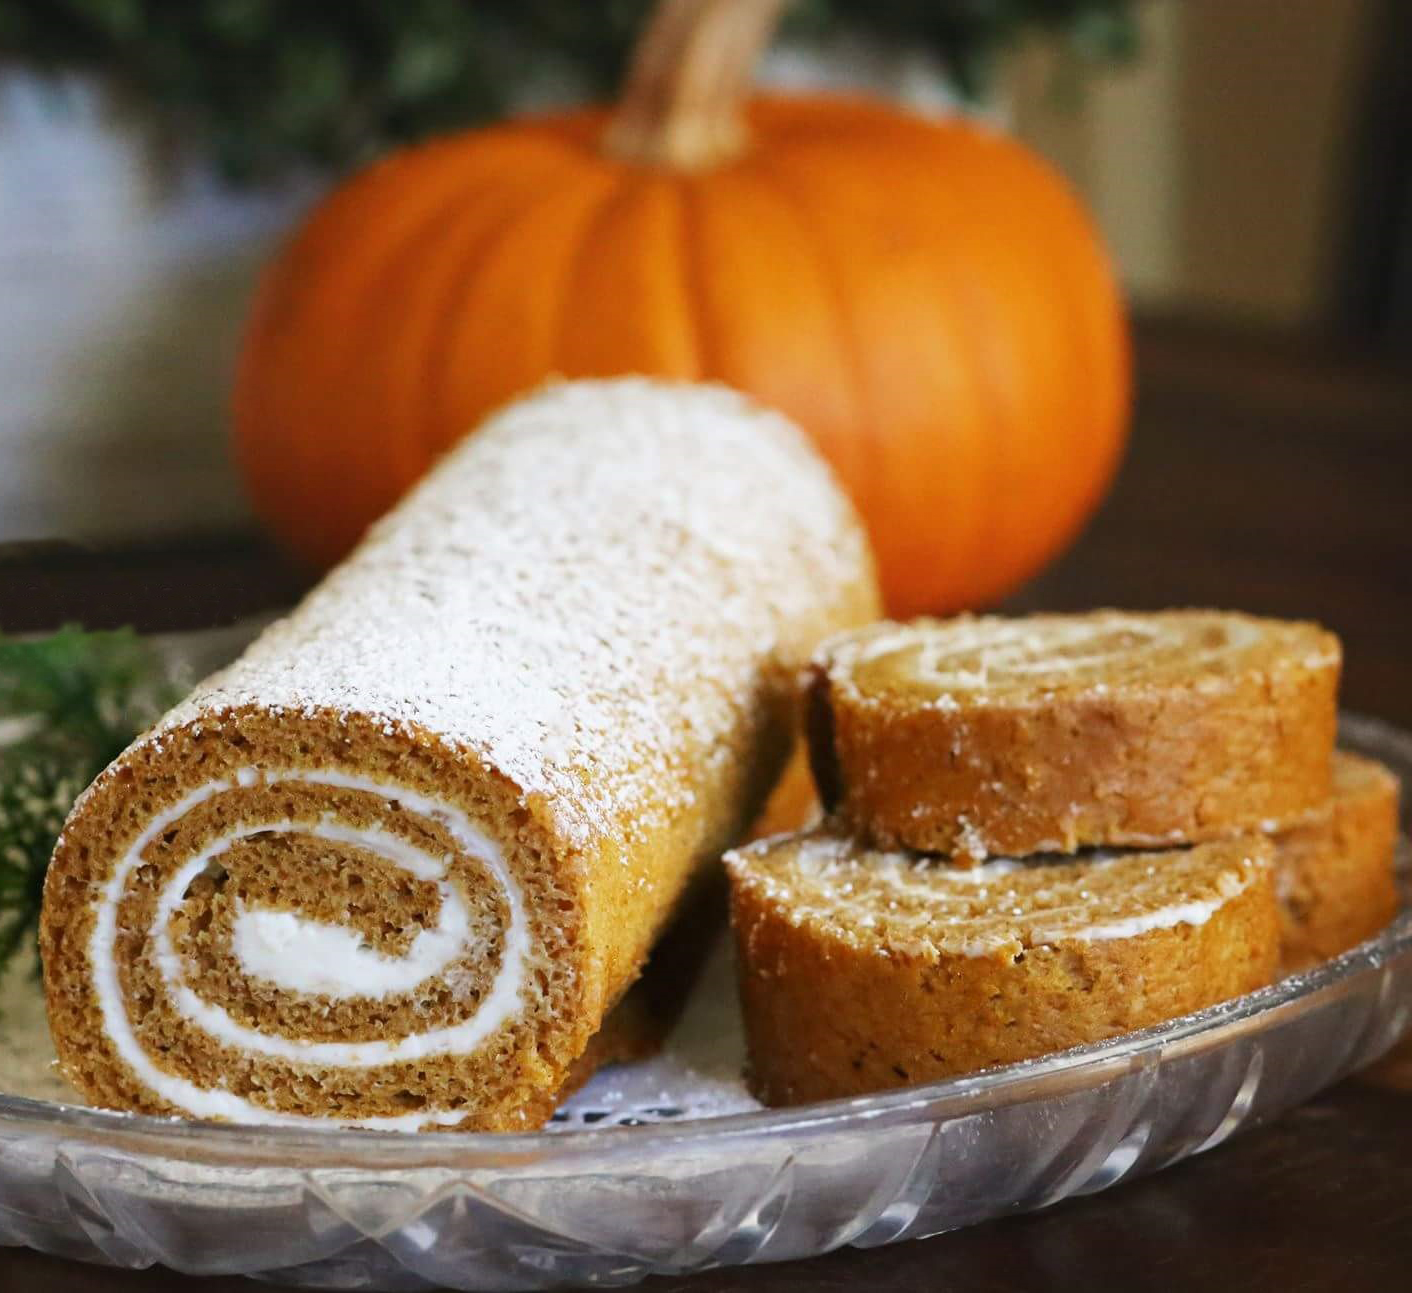 pumpkin roll with a few stacked sliced sit in front of a pumpkin